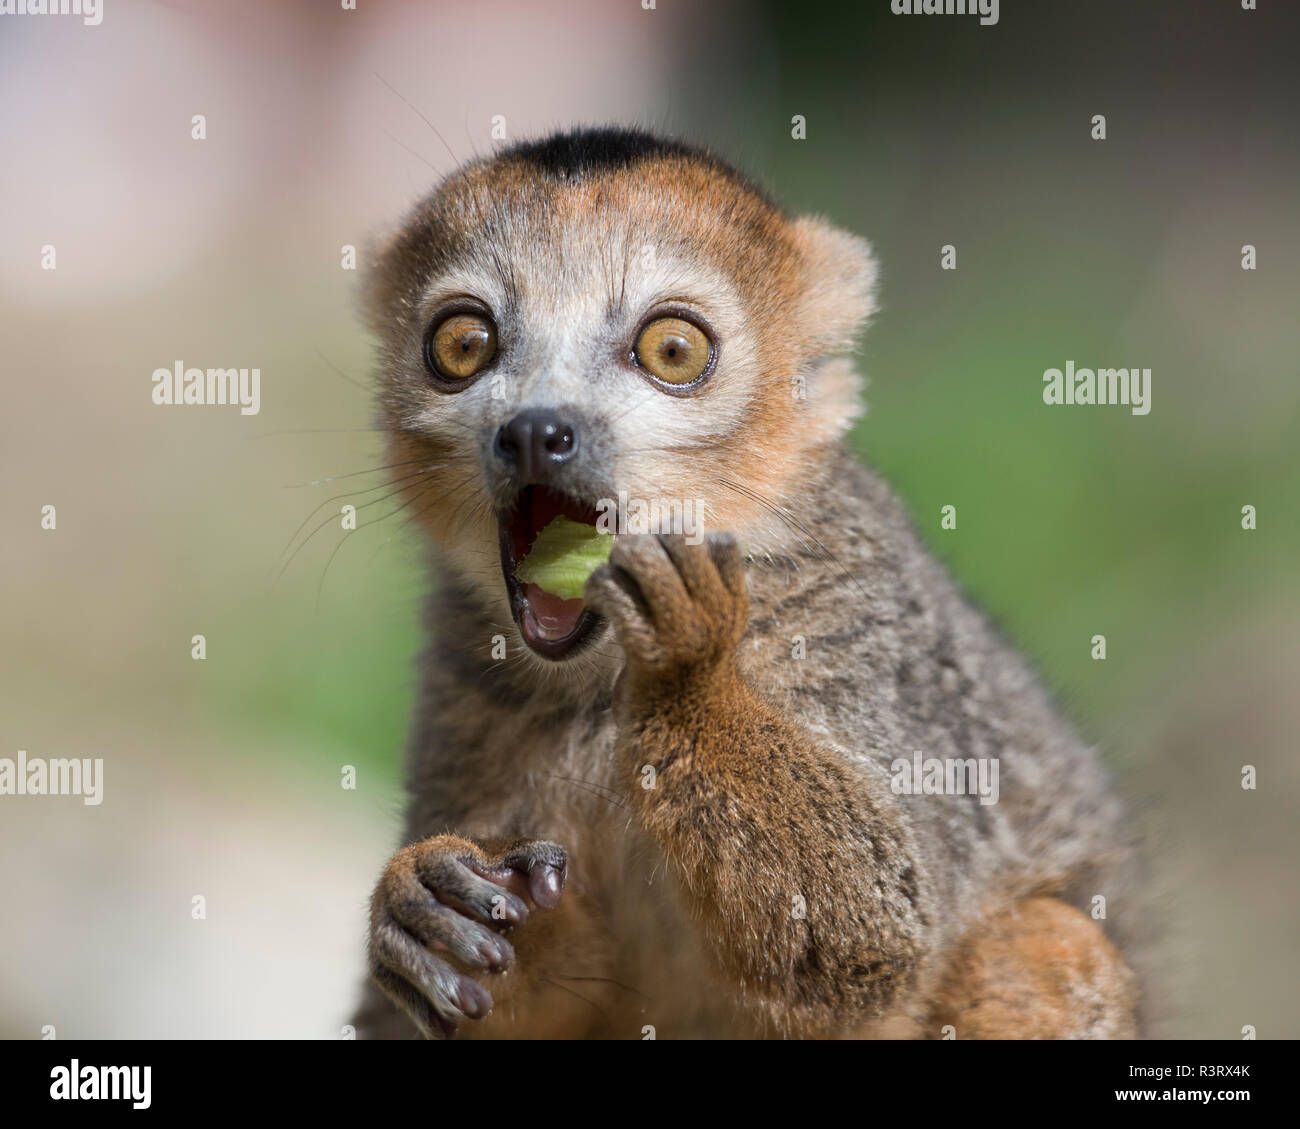 Portrait of eating crowned lemur with eyes wide open - Stock Image